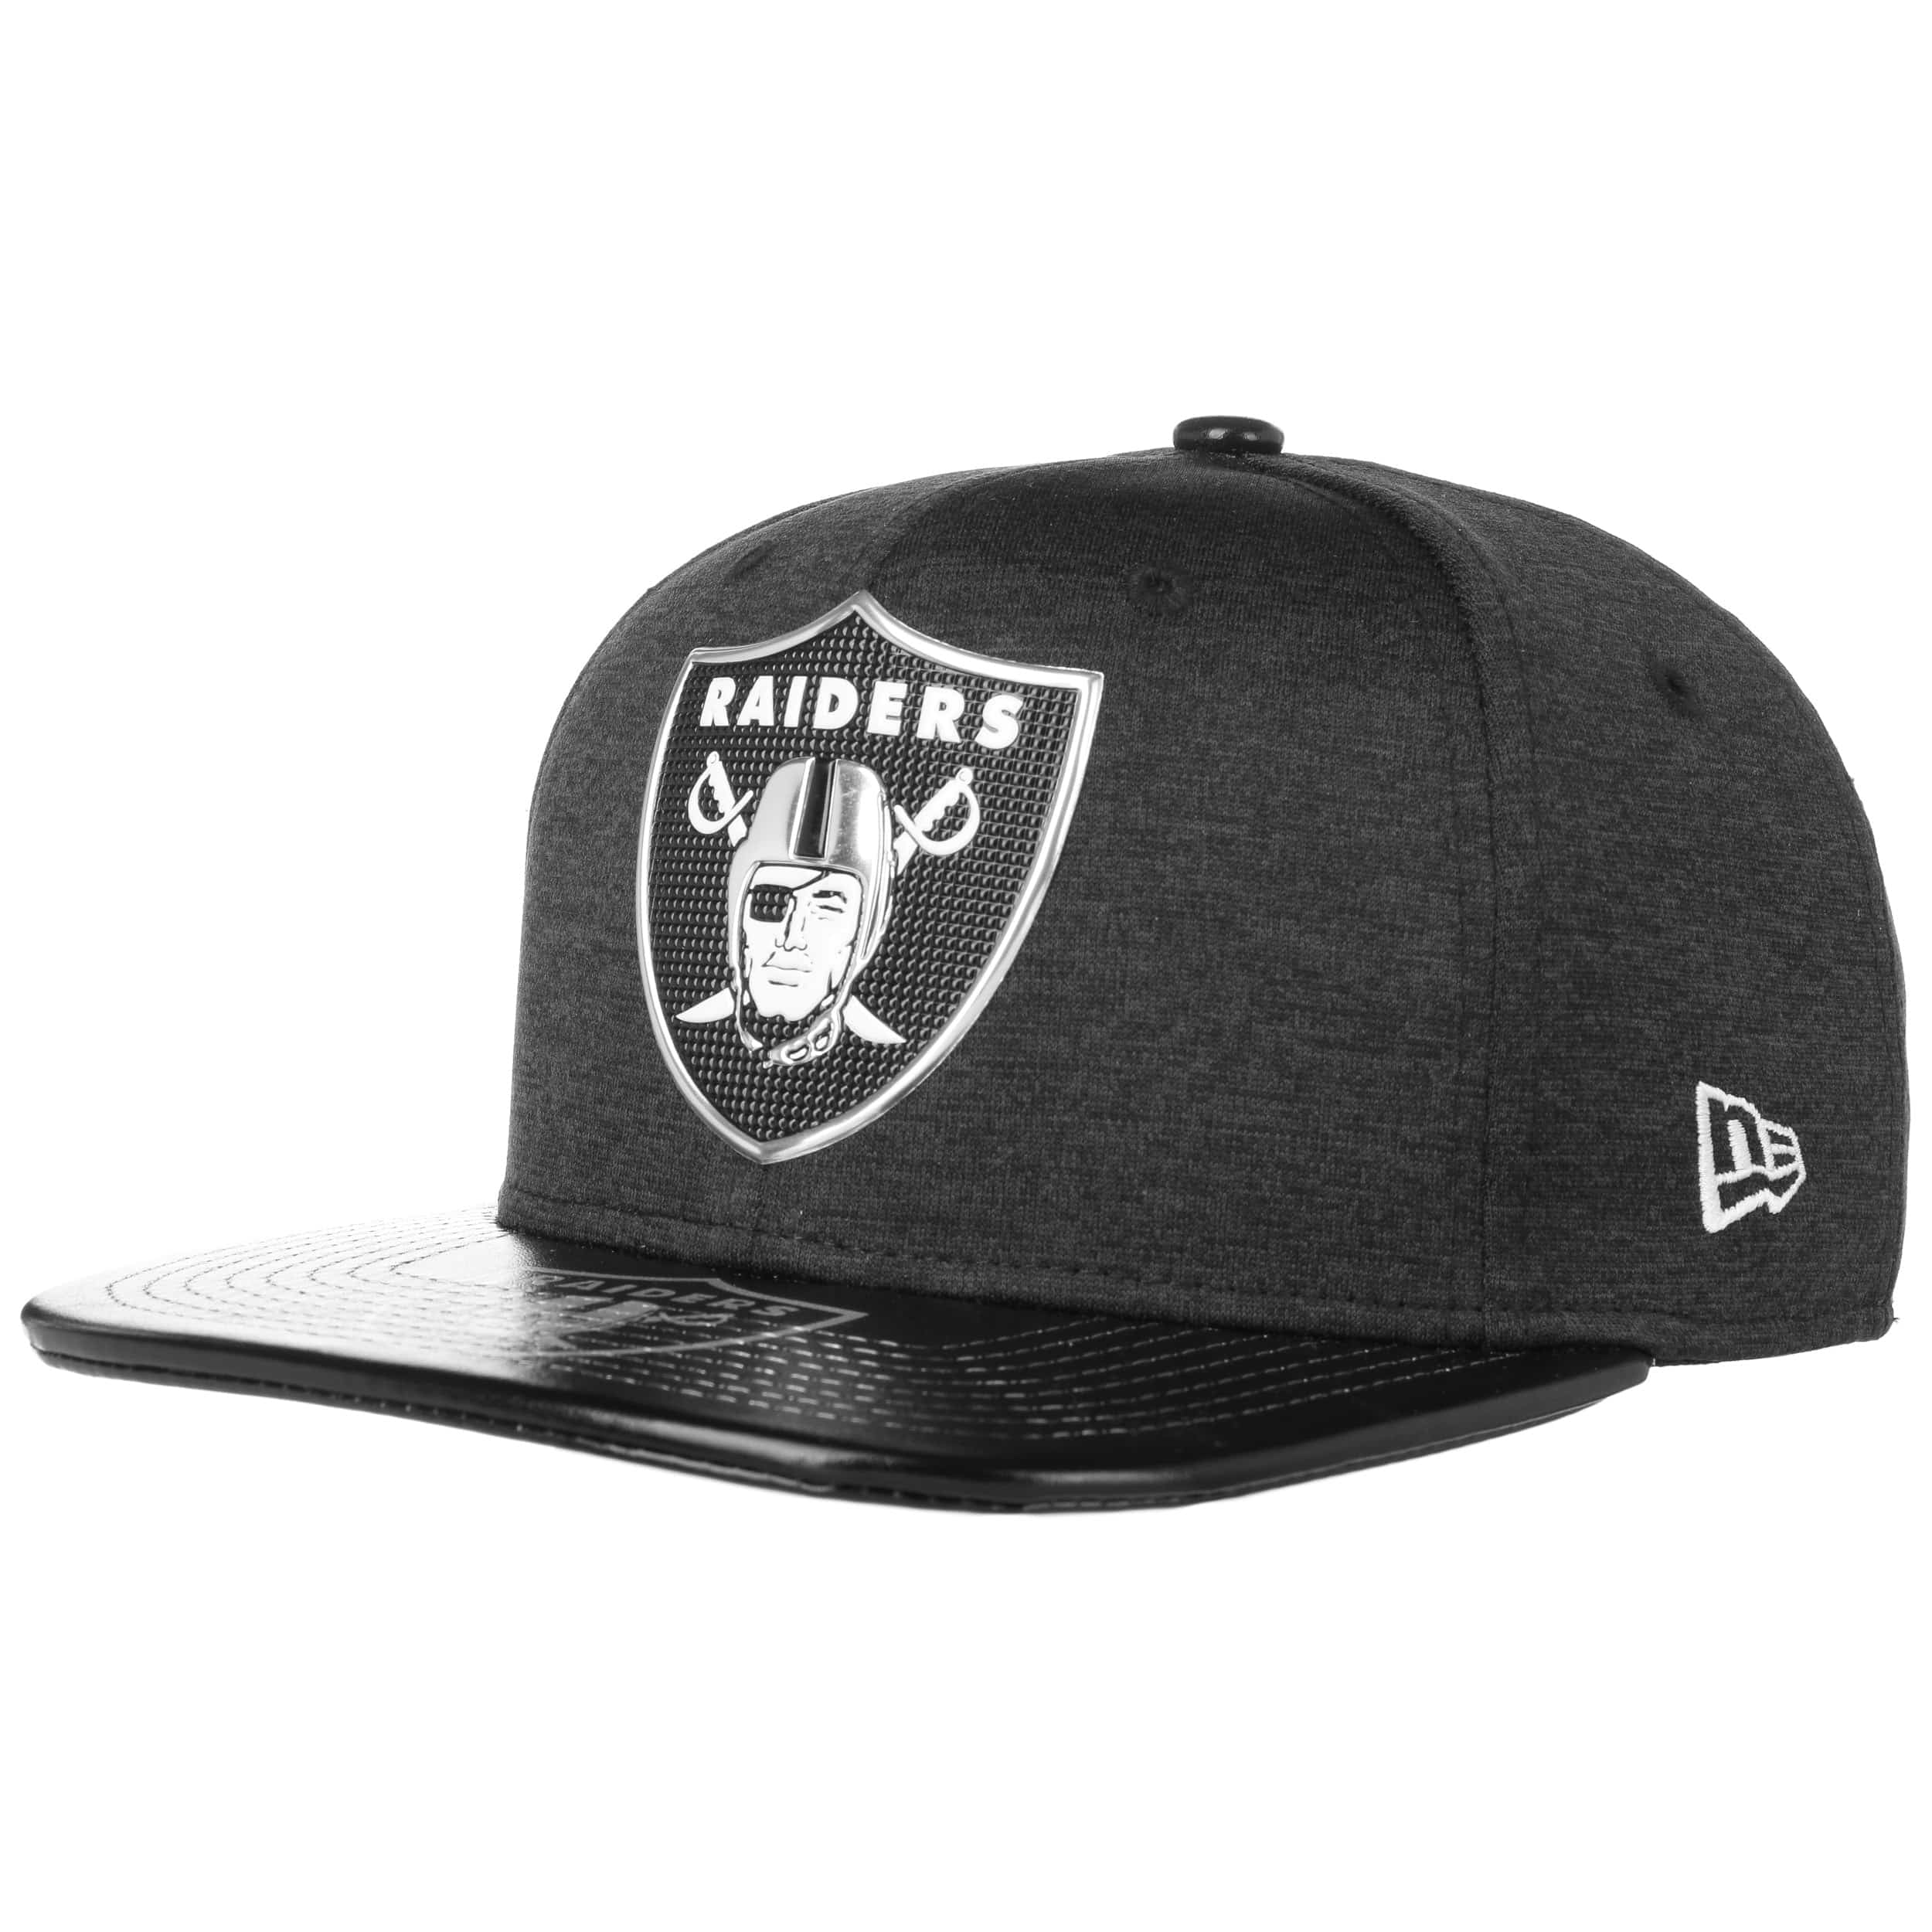 678ad7f2d1085 Gorra 9Fifty On Stage Raiders by New Era - Gorras - sombreroshop.es